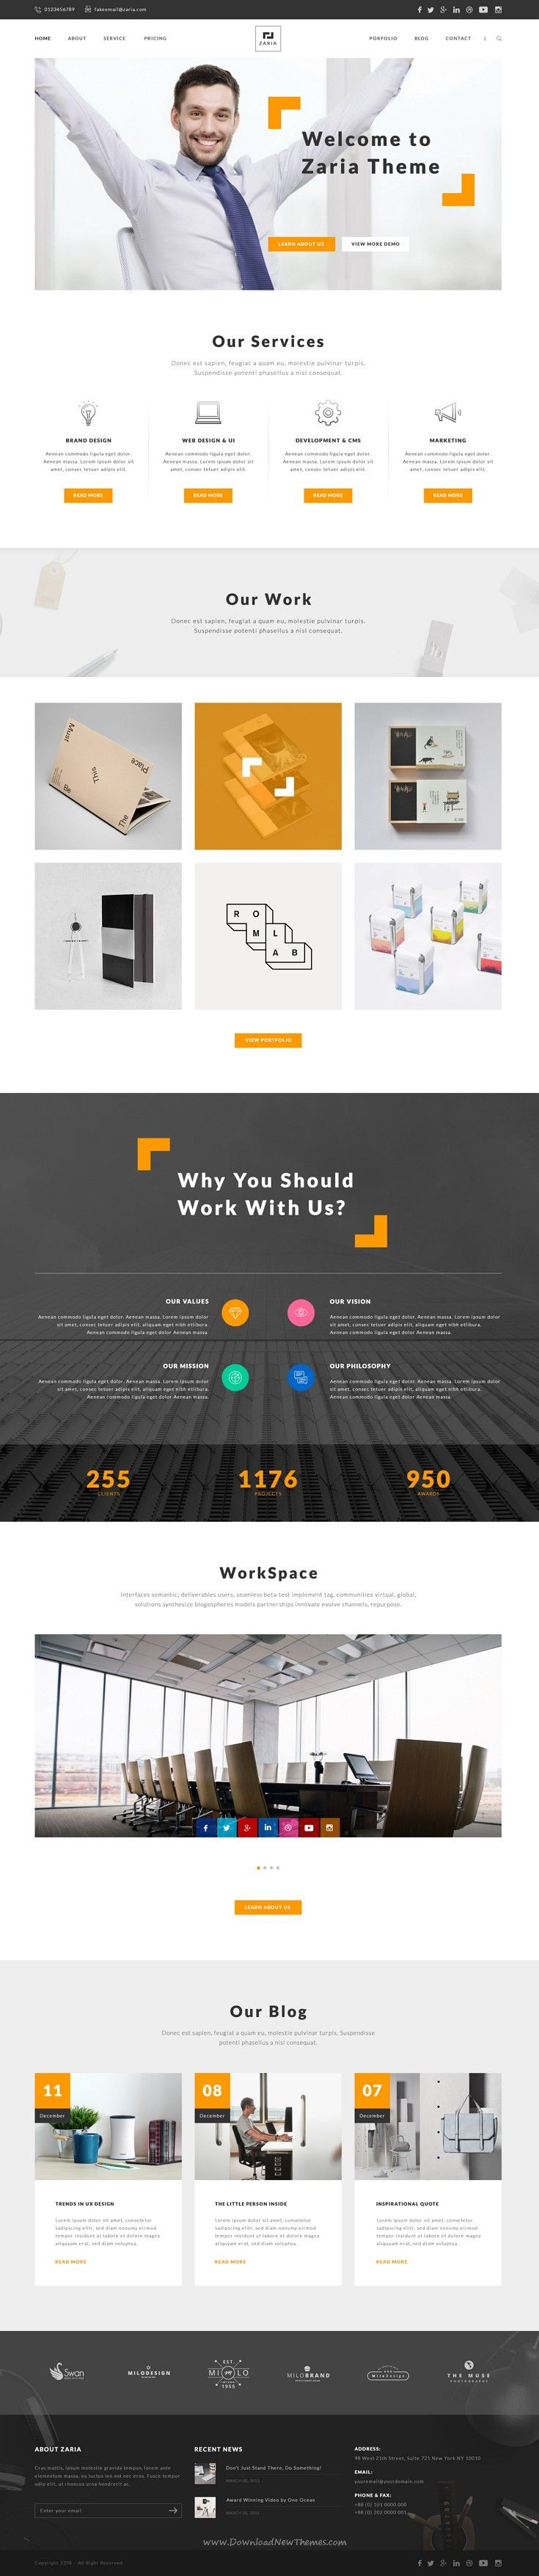 Zaria - A Beautiful & Smart Business PSD Template. A beautiful, smart and customer-oriented design idea for your website layout.